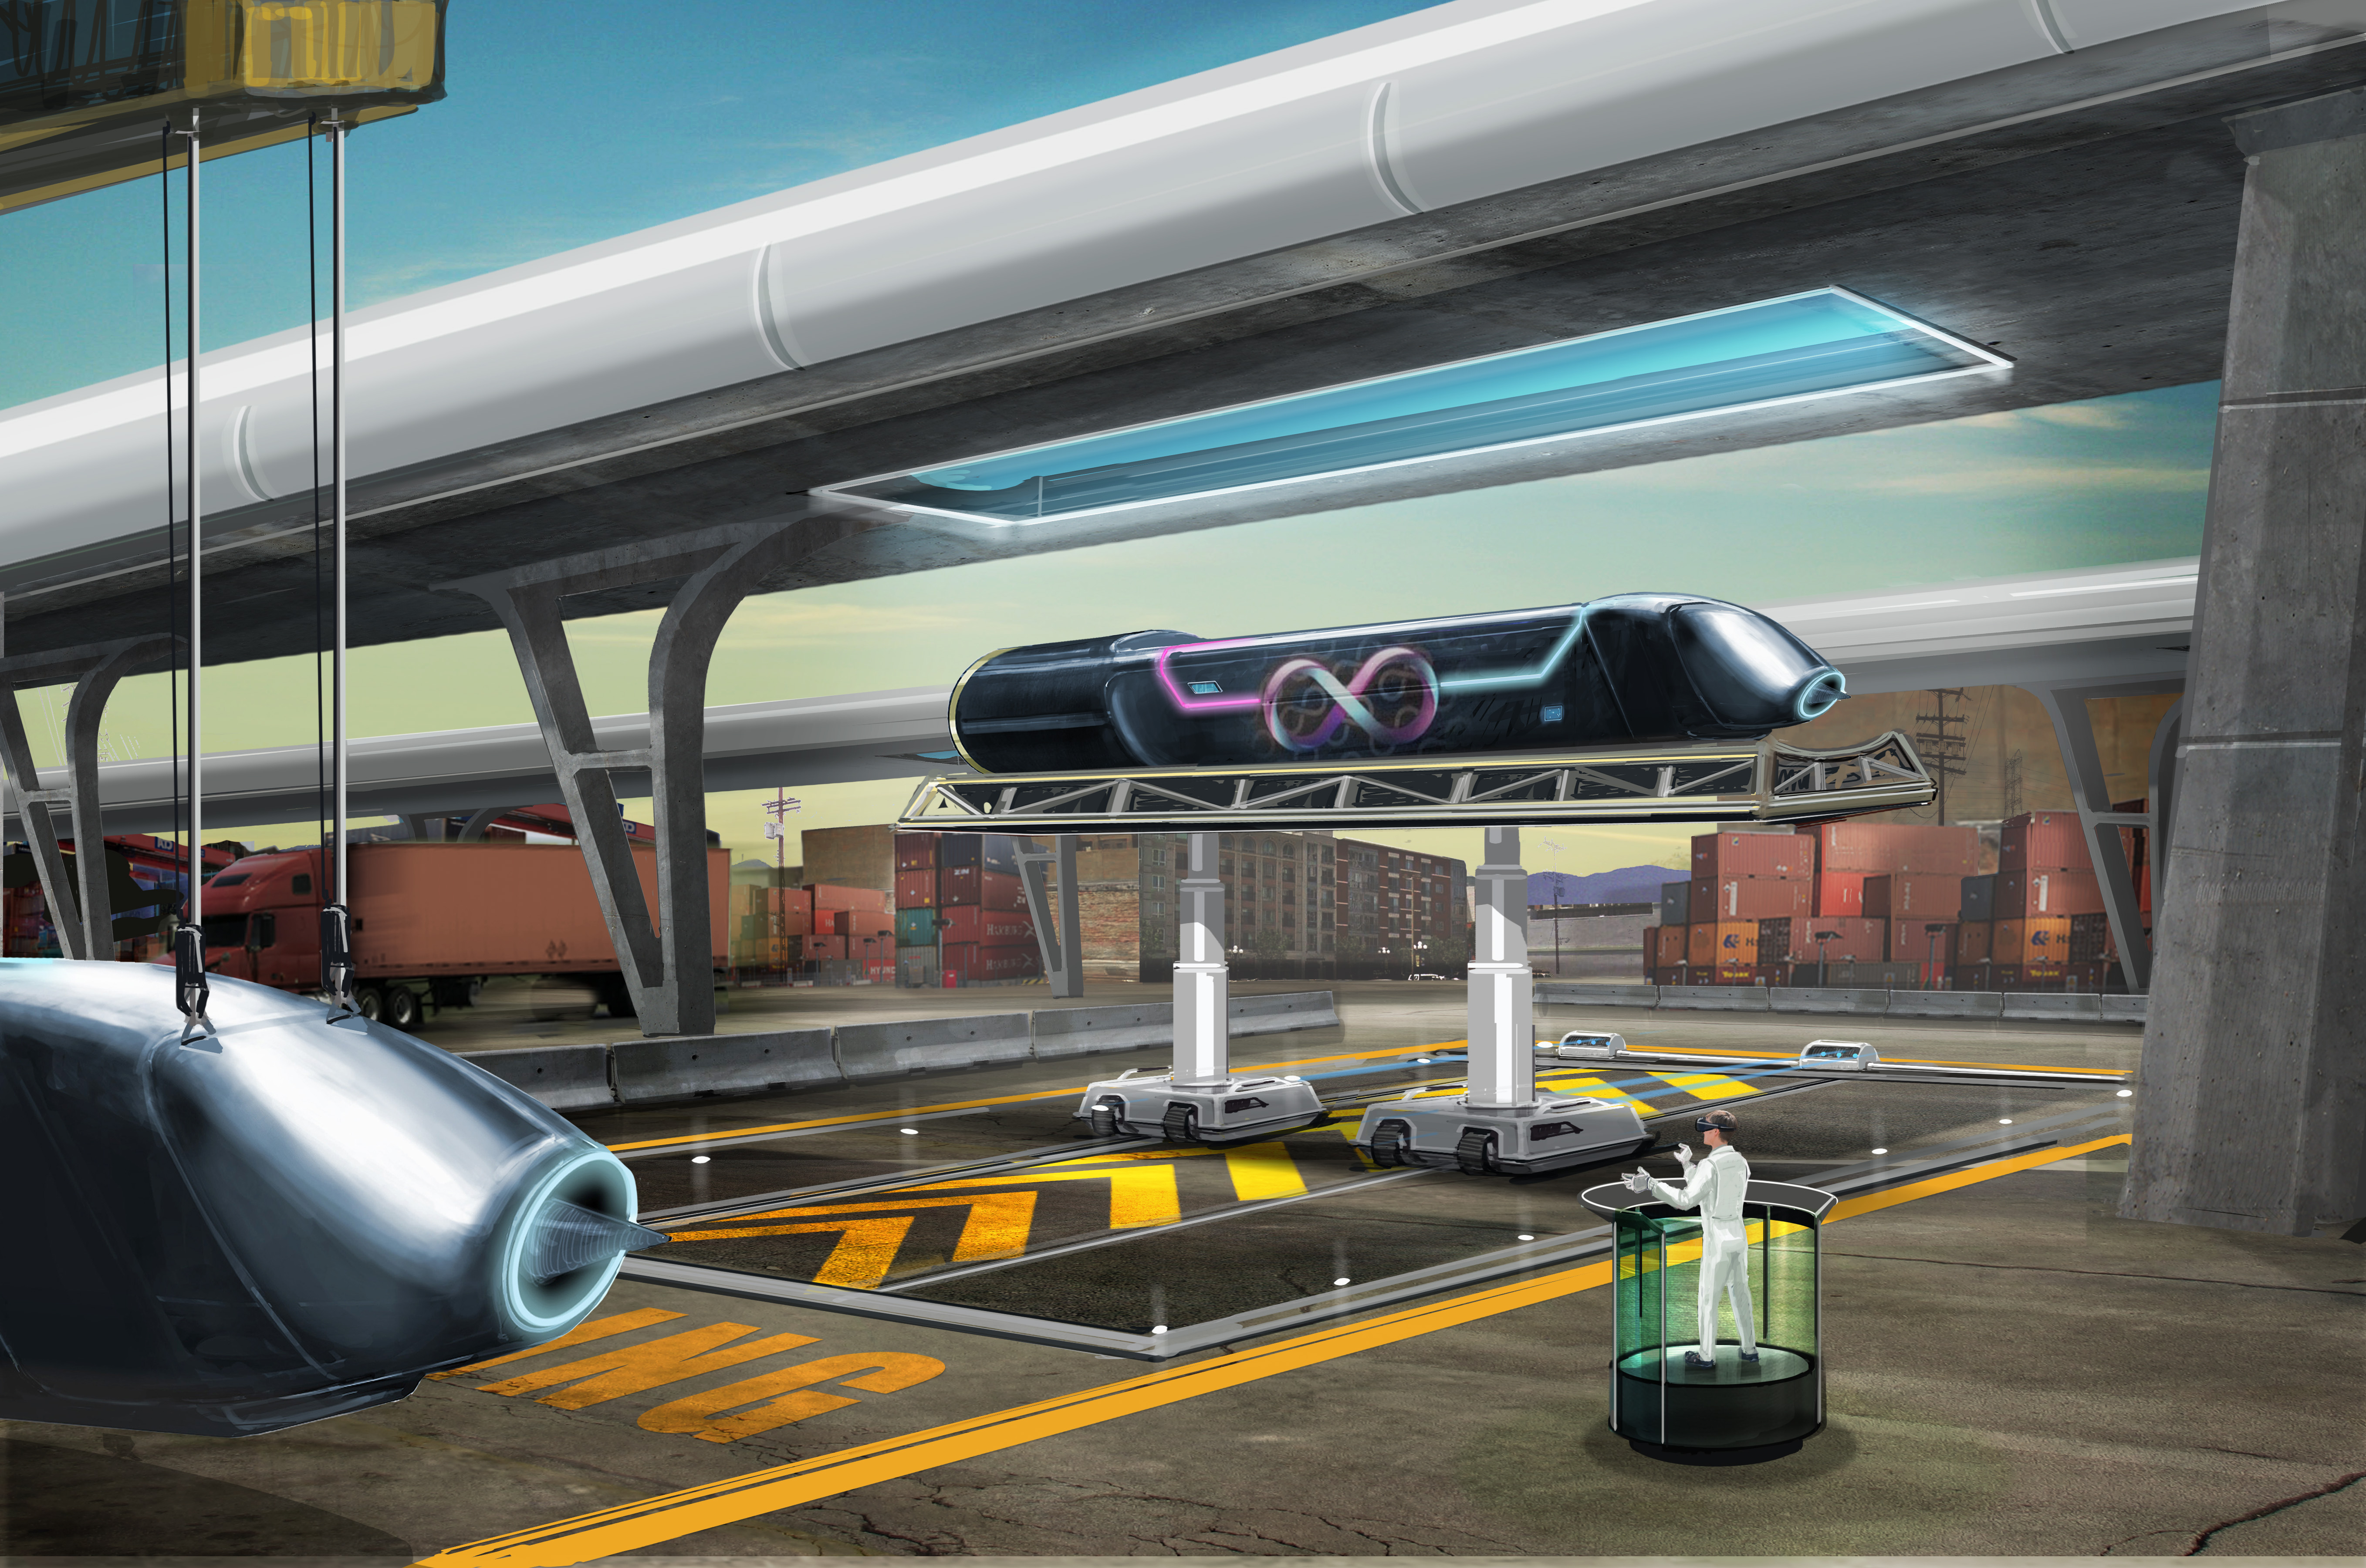 In May 2016 Russian Railways created a working group to collaborate with Hyperloop.